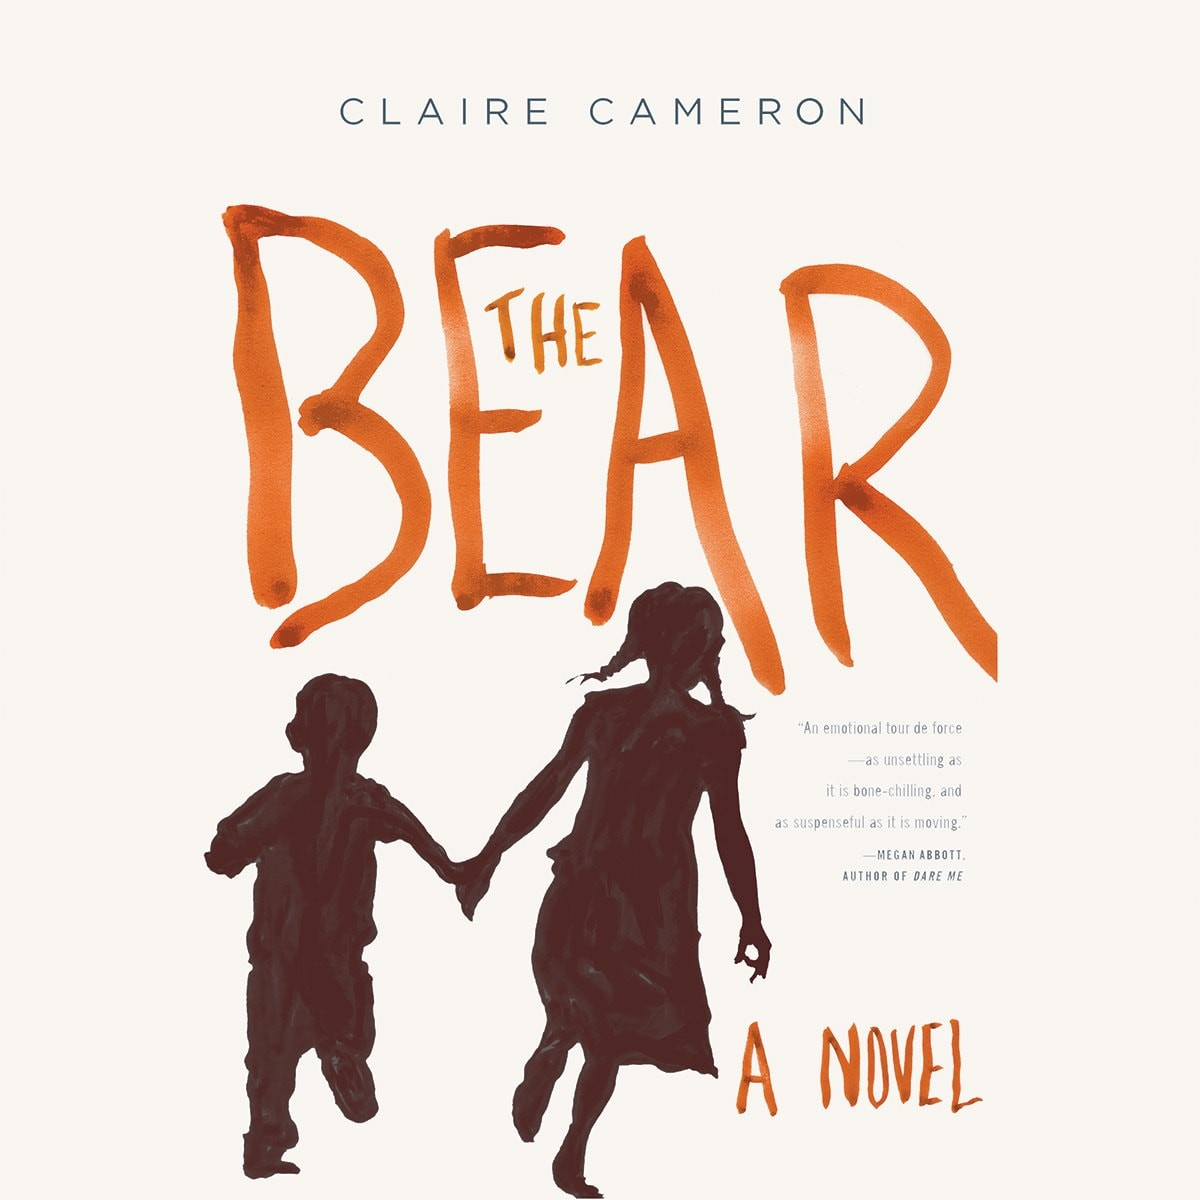 the_bear_claire_cameron_book_cover